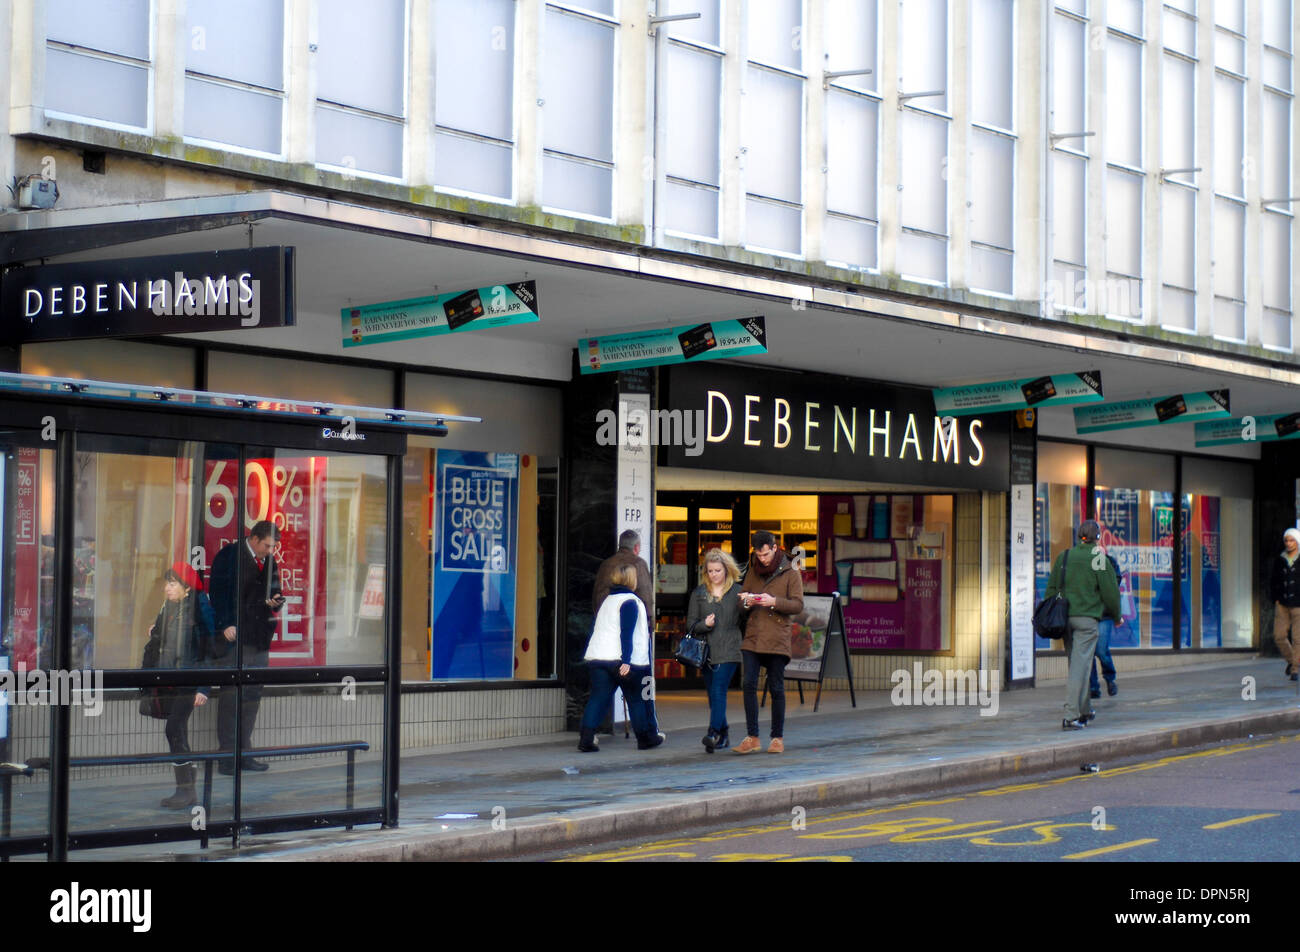 Debenhams shop front Northampton retail chain - Stock Image